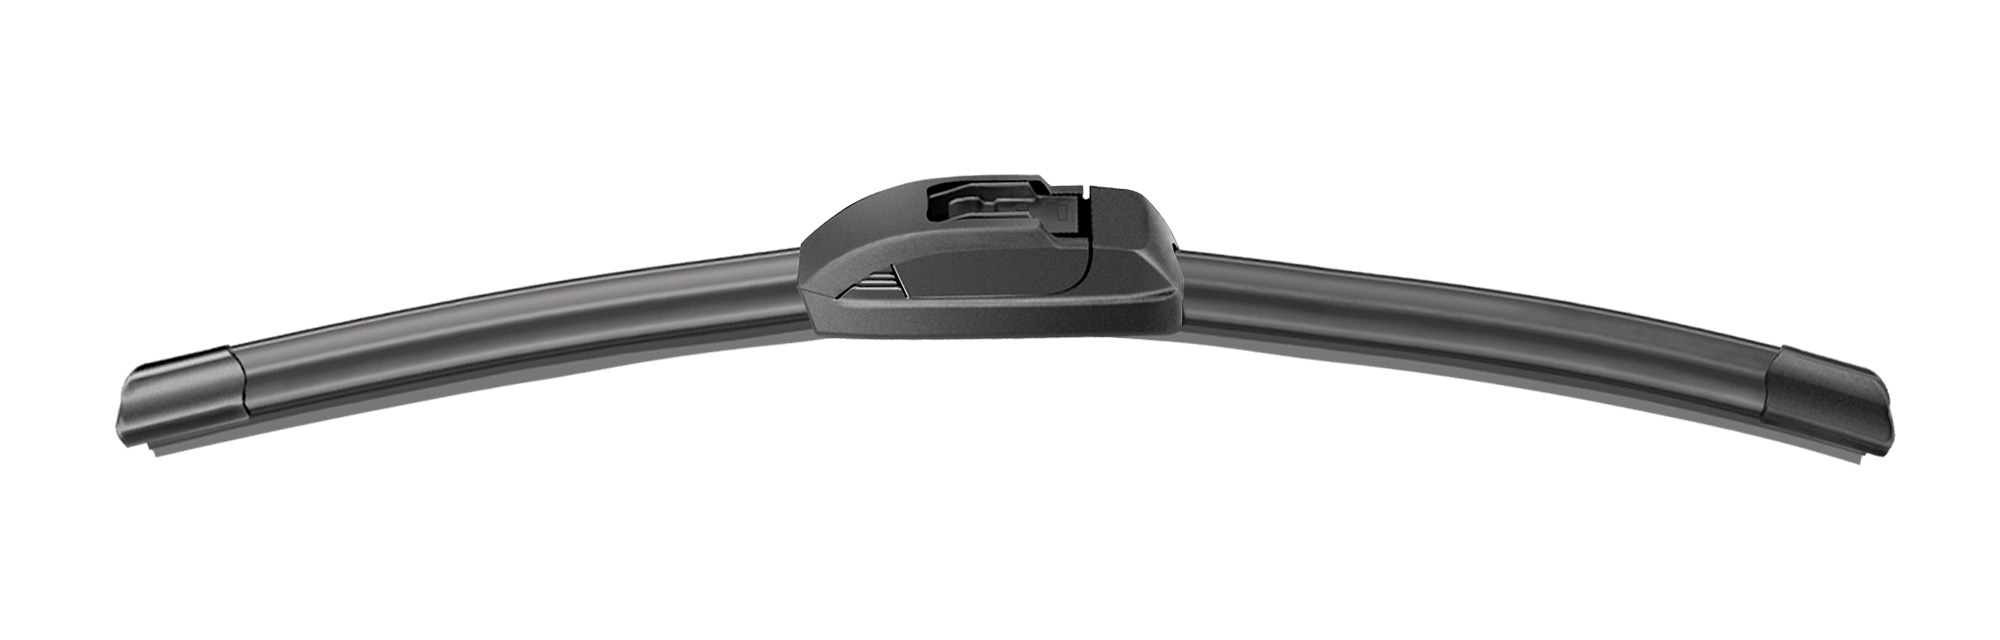 Goodyear Windshield Wipers >> How long before your wipers start squeaking? (windshield ...